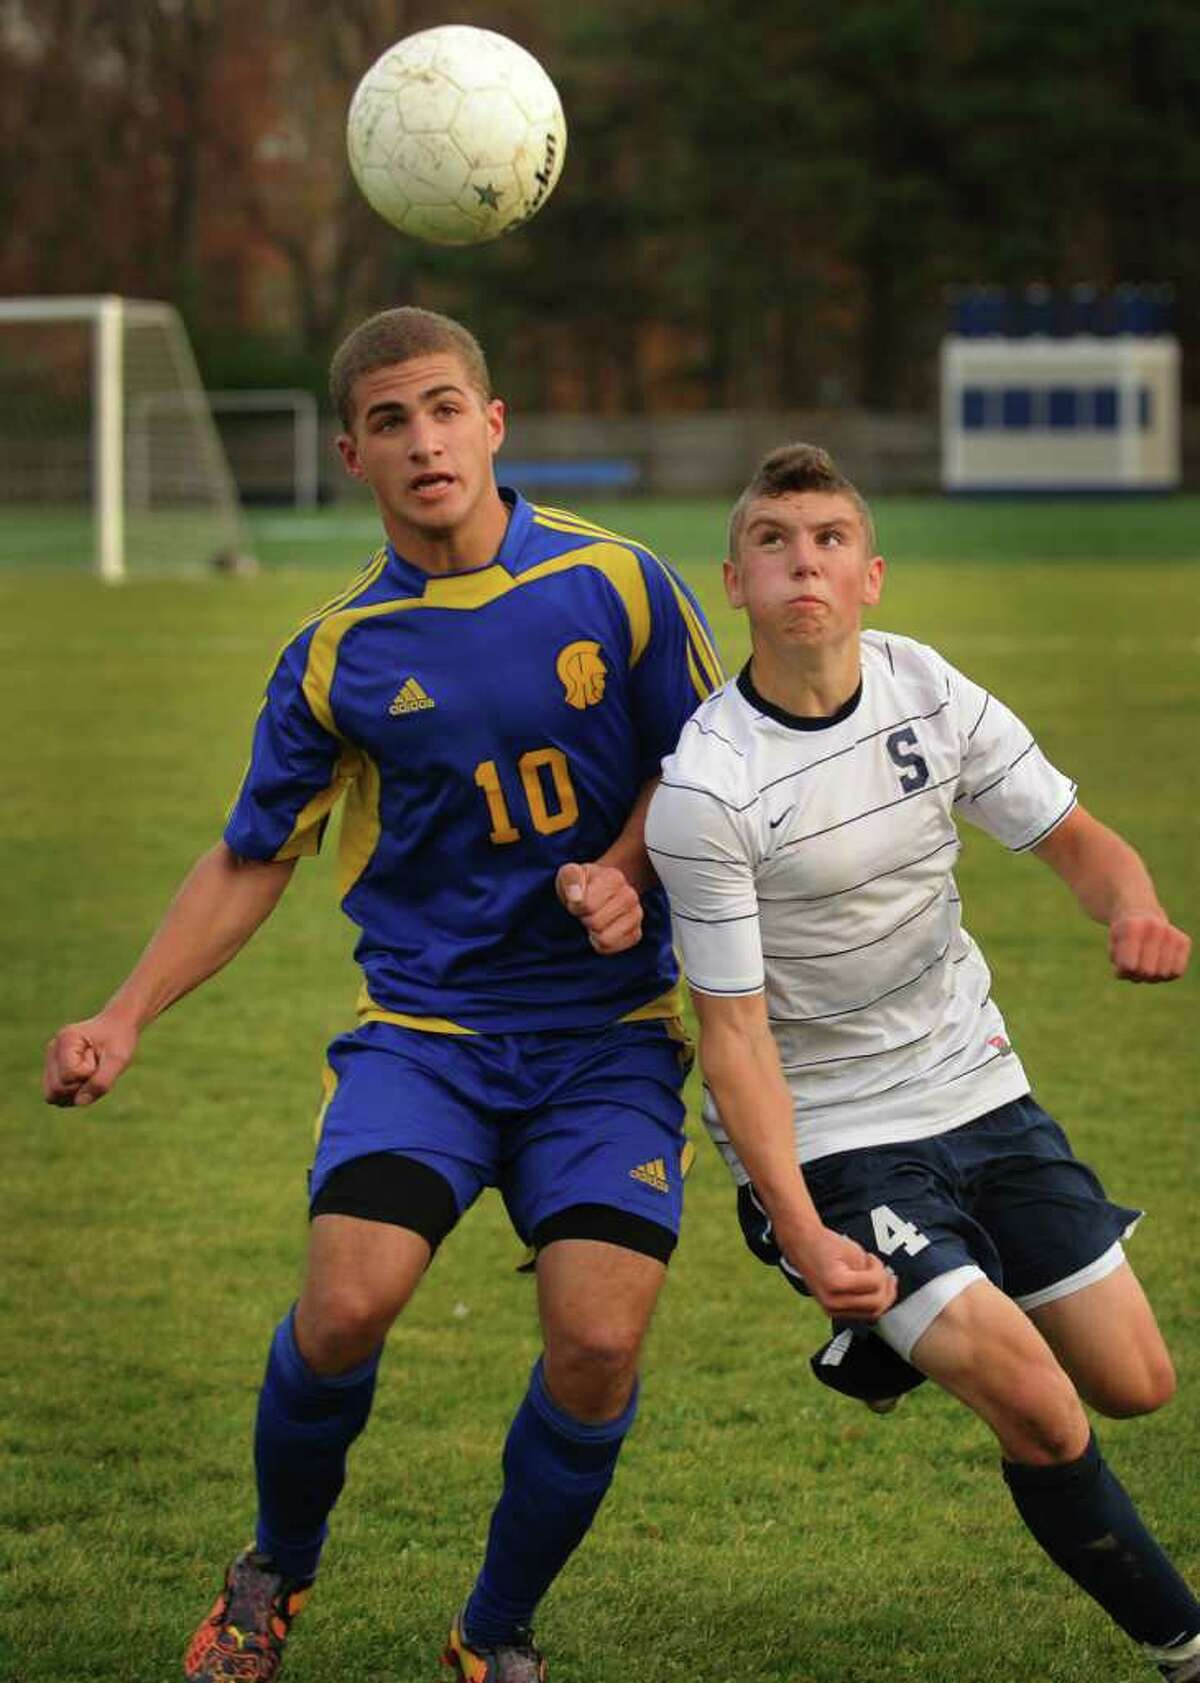 Simsbury's Shane Arena, left, and Staples' Mikey Scott position to play a header during the Wreckers' 1-0 victory in the Class LL quarterfinals at Staples High School in Westport on Monday, November 15, 2010.